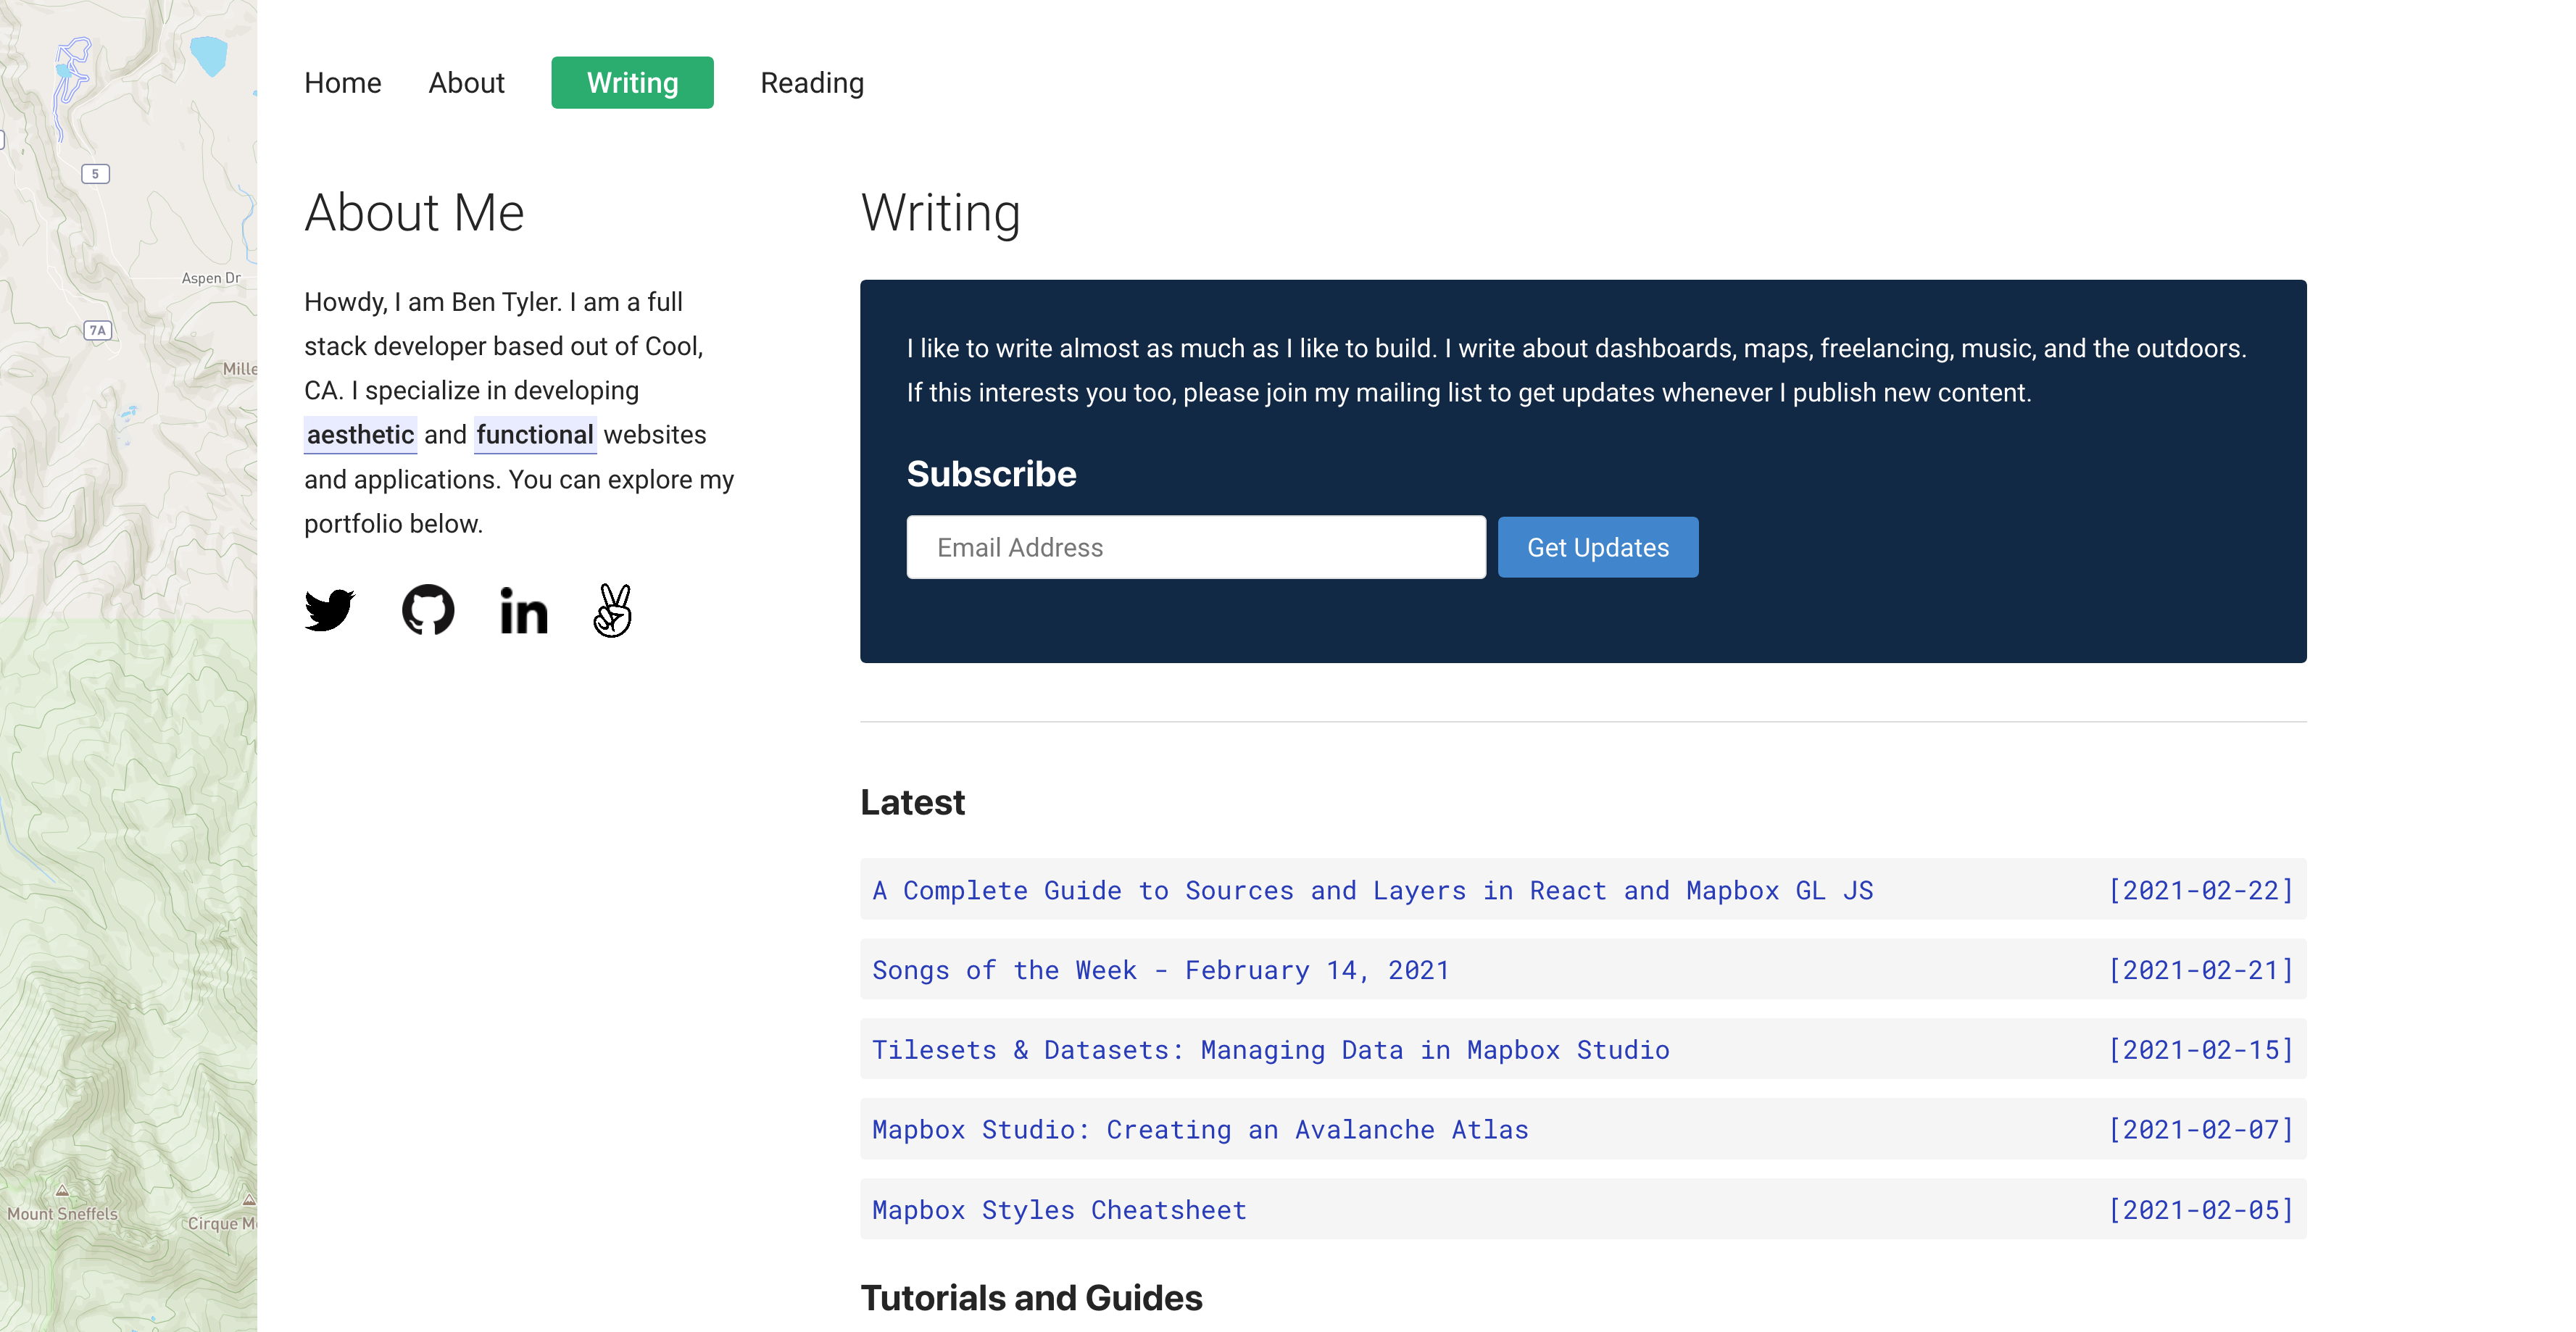 New writing layout with newsletter signup